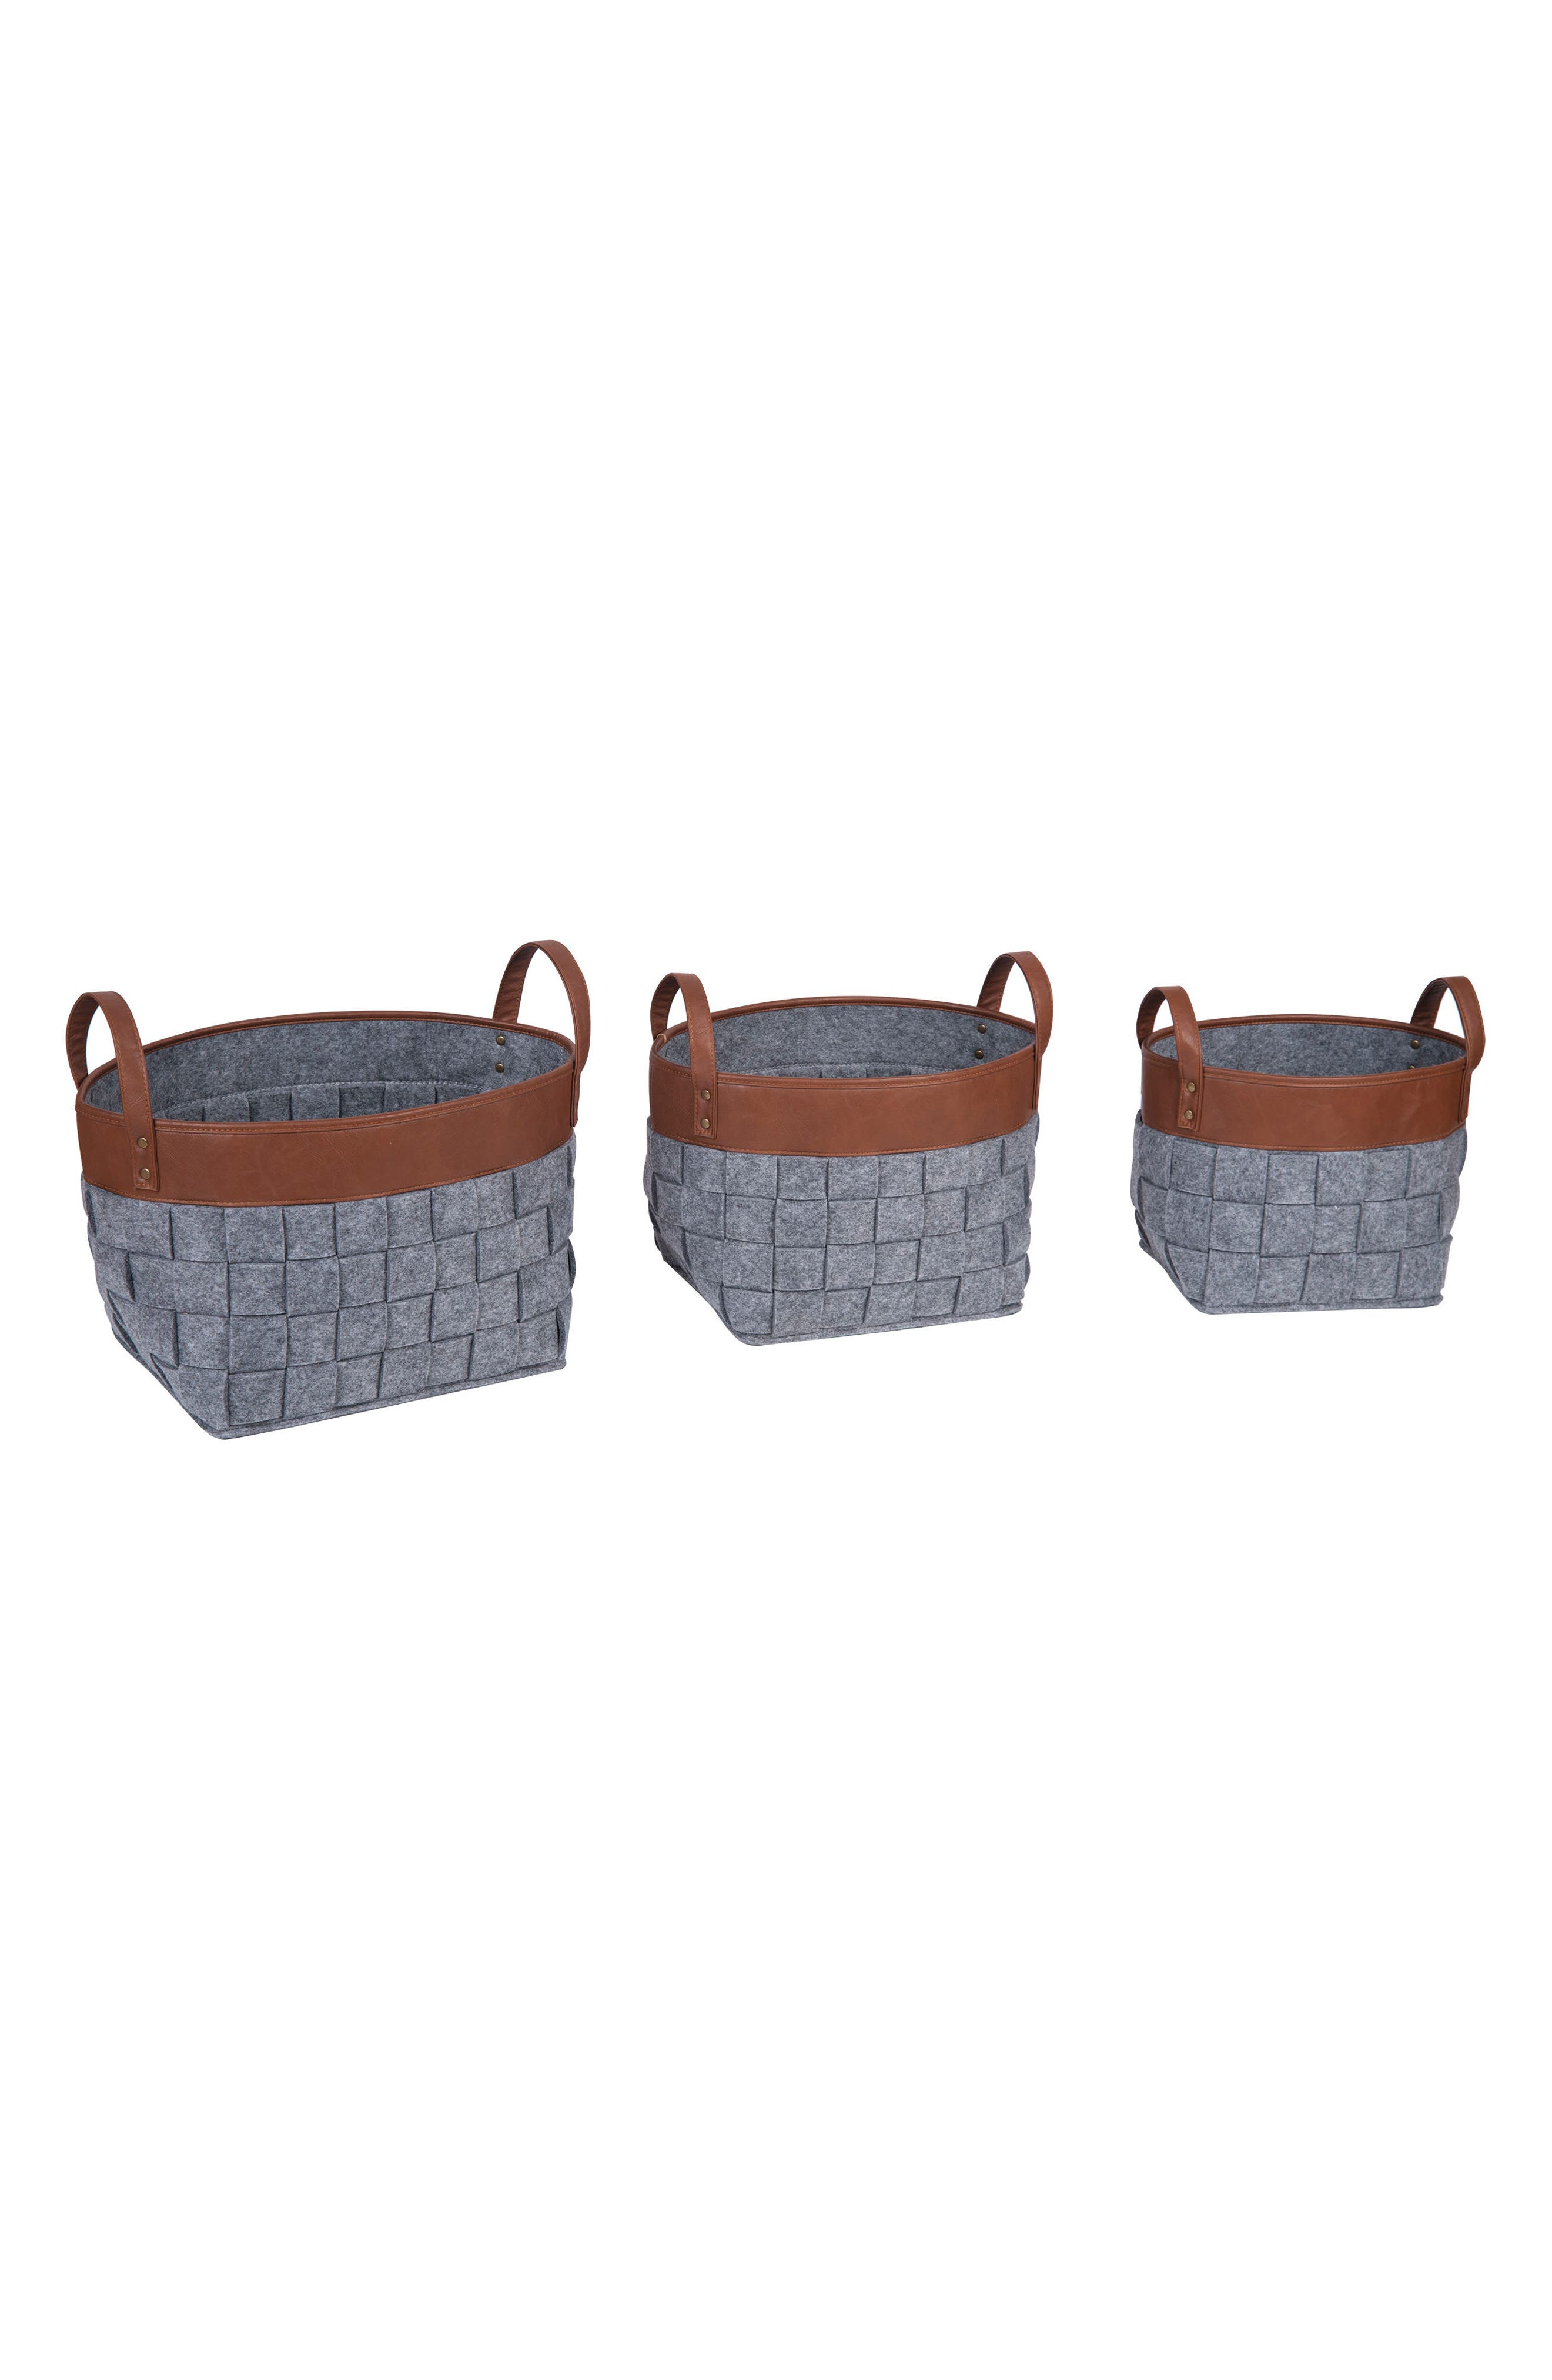 Main Image - Foreside Set of 3 Woven Nesting Baskets